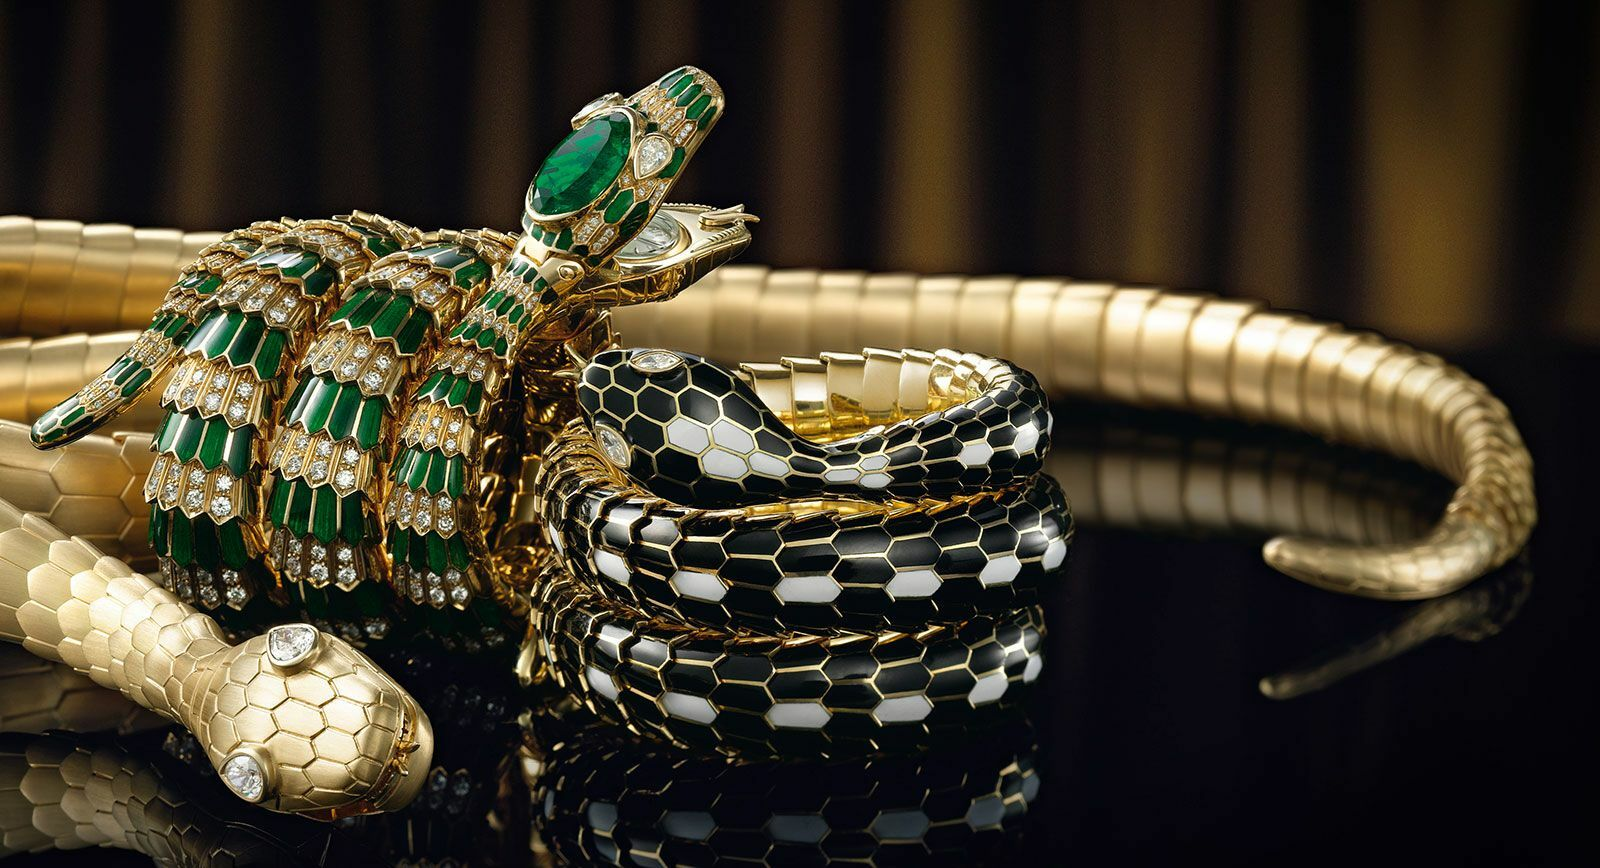 Bvlgari Serpenti Form Exhibition: Celebration of the Serpenti Snake and its Legacy